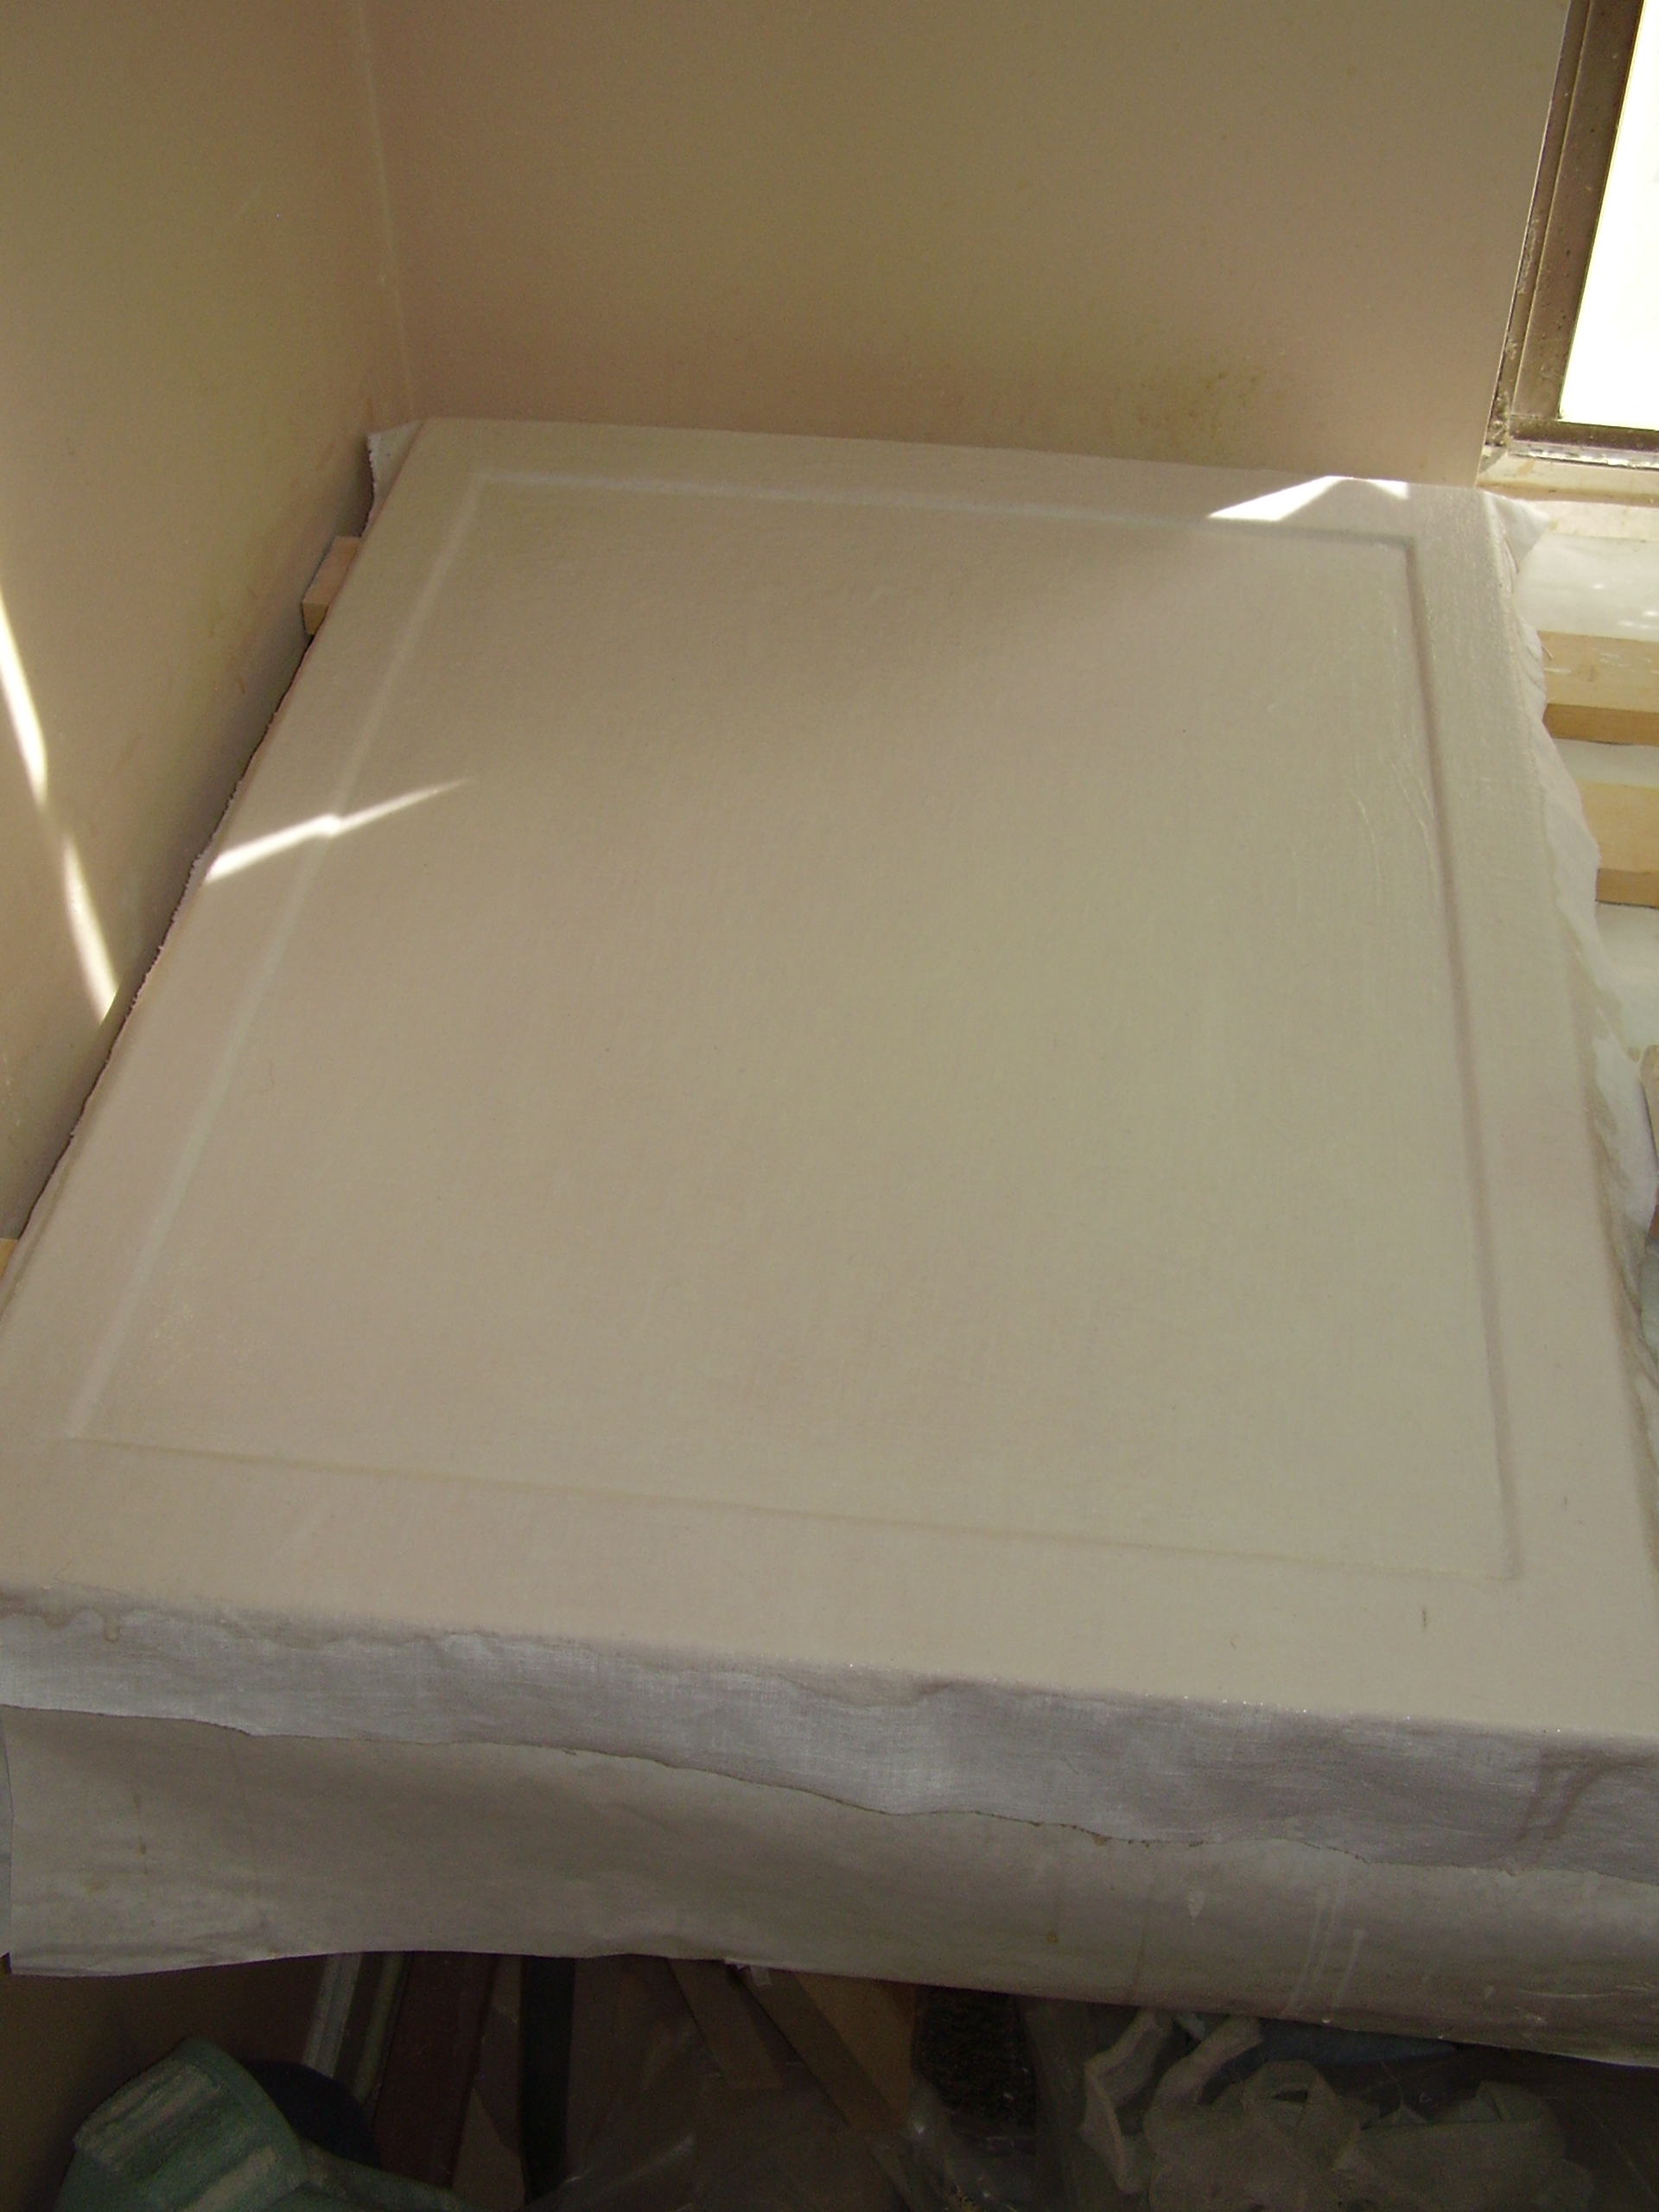 Board primed with linen